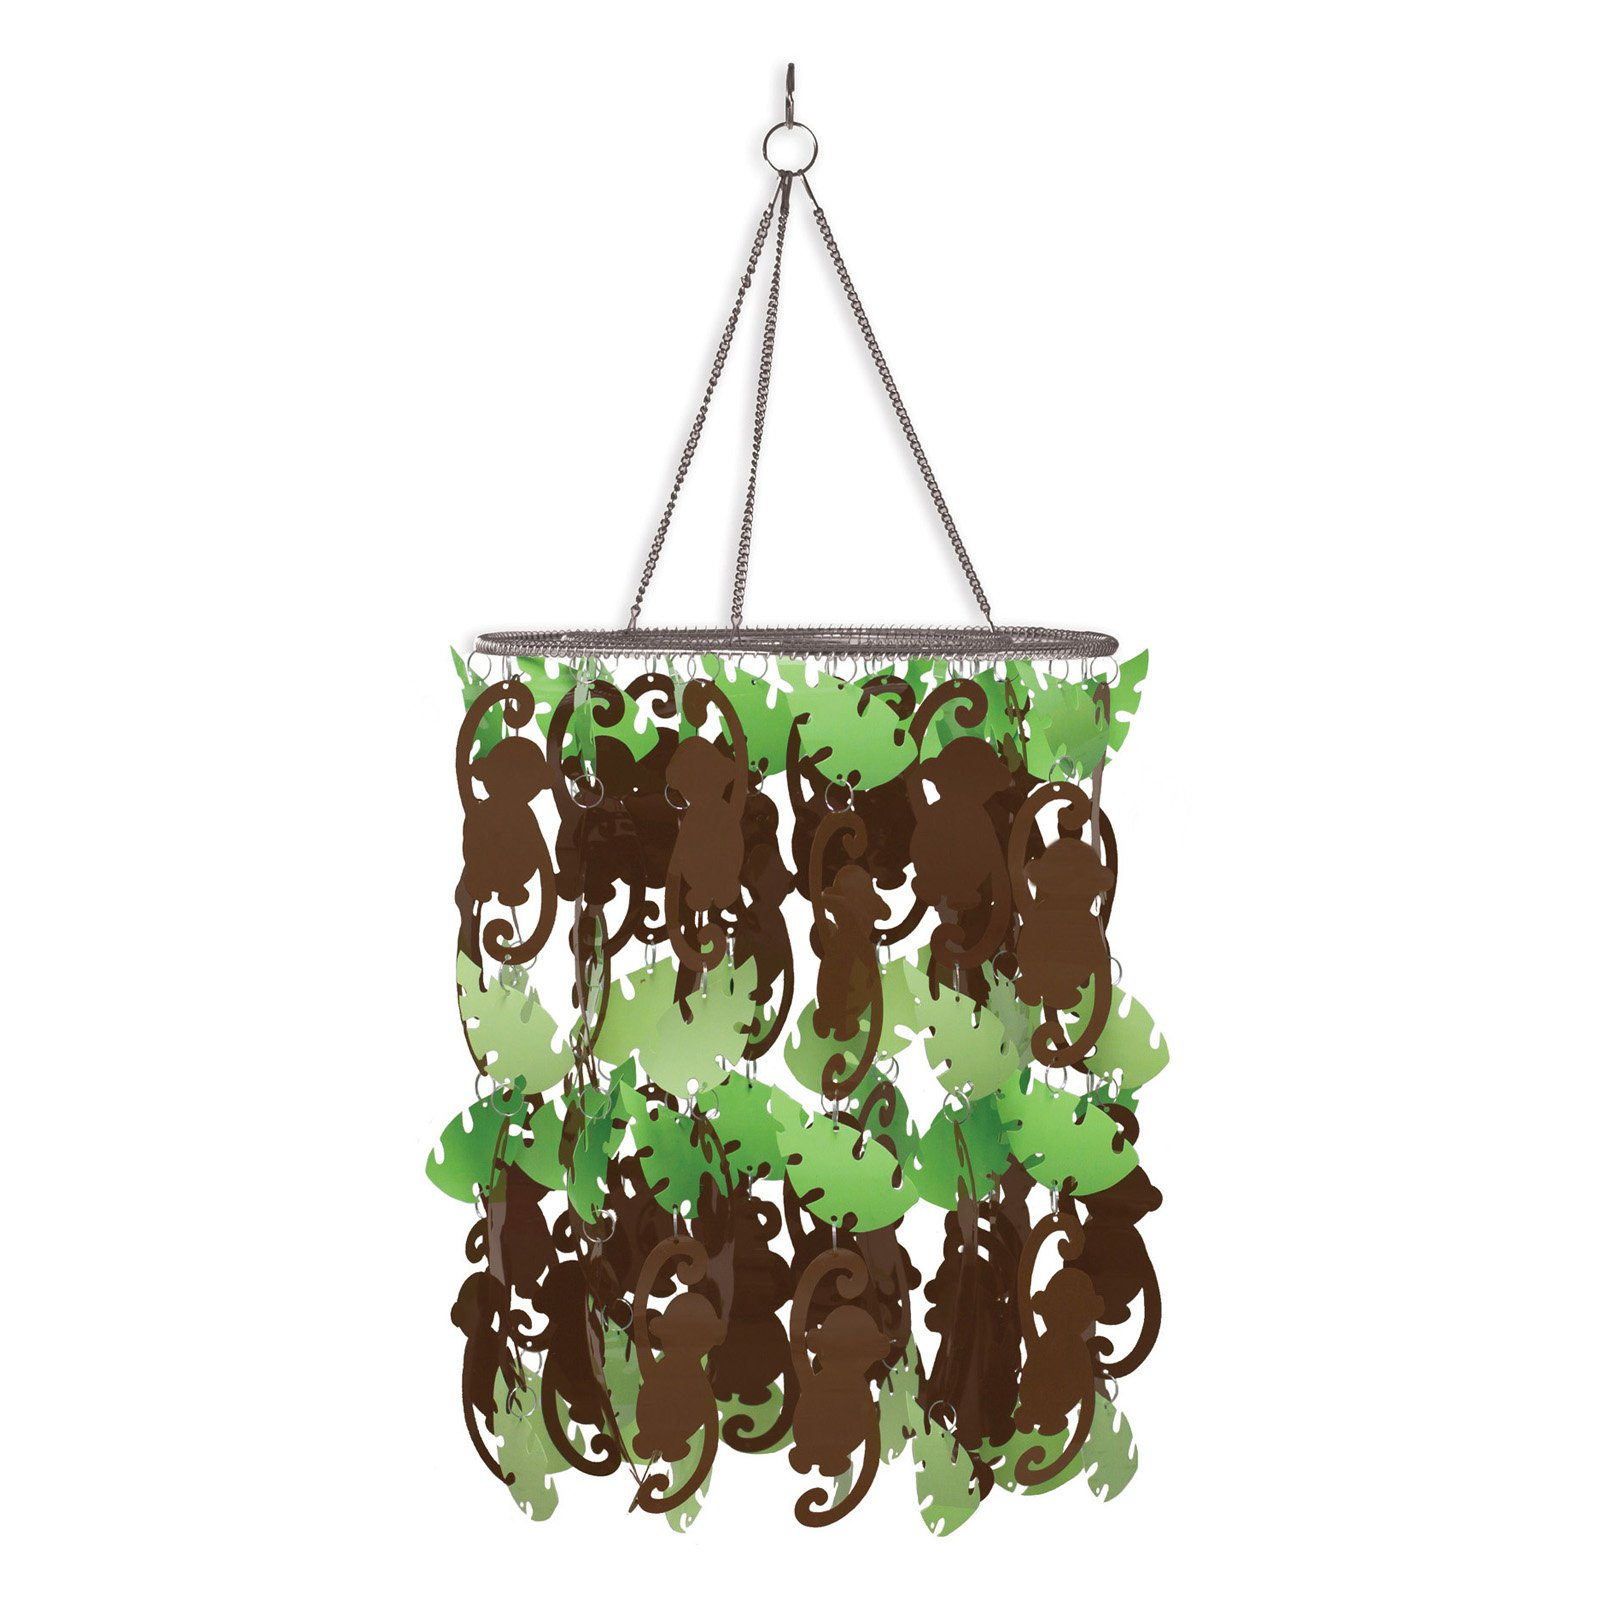 WallPops Monkeying Around Chandelier